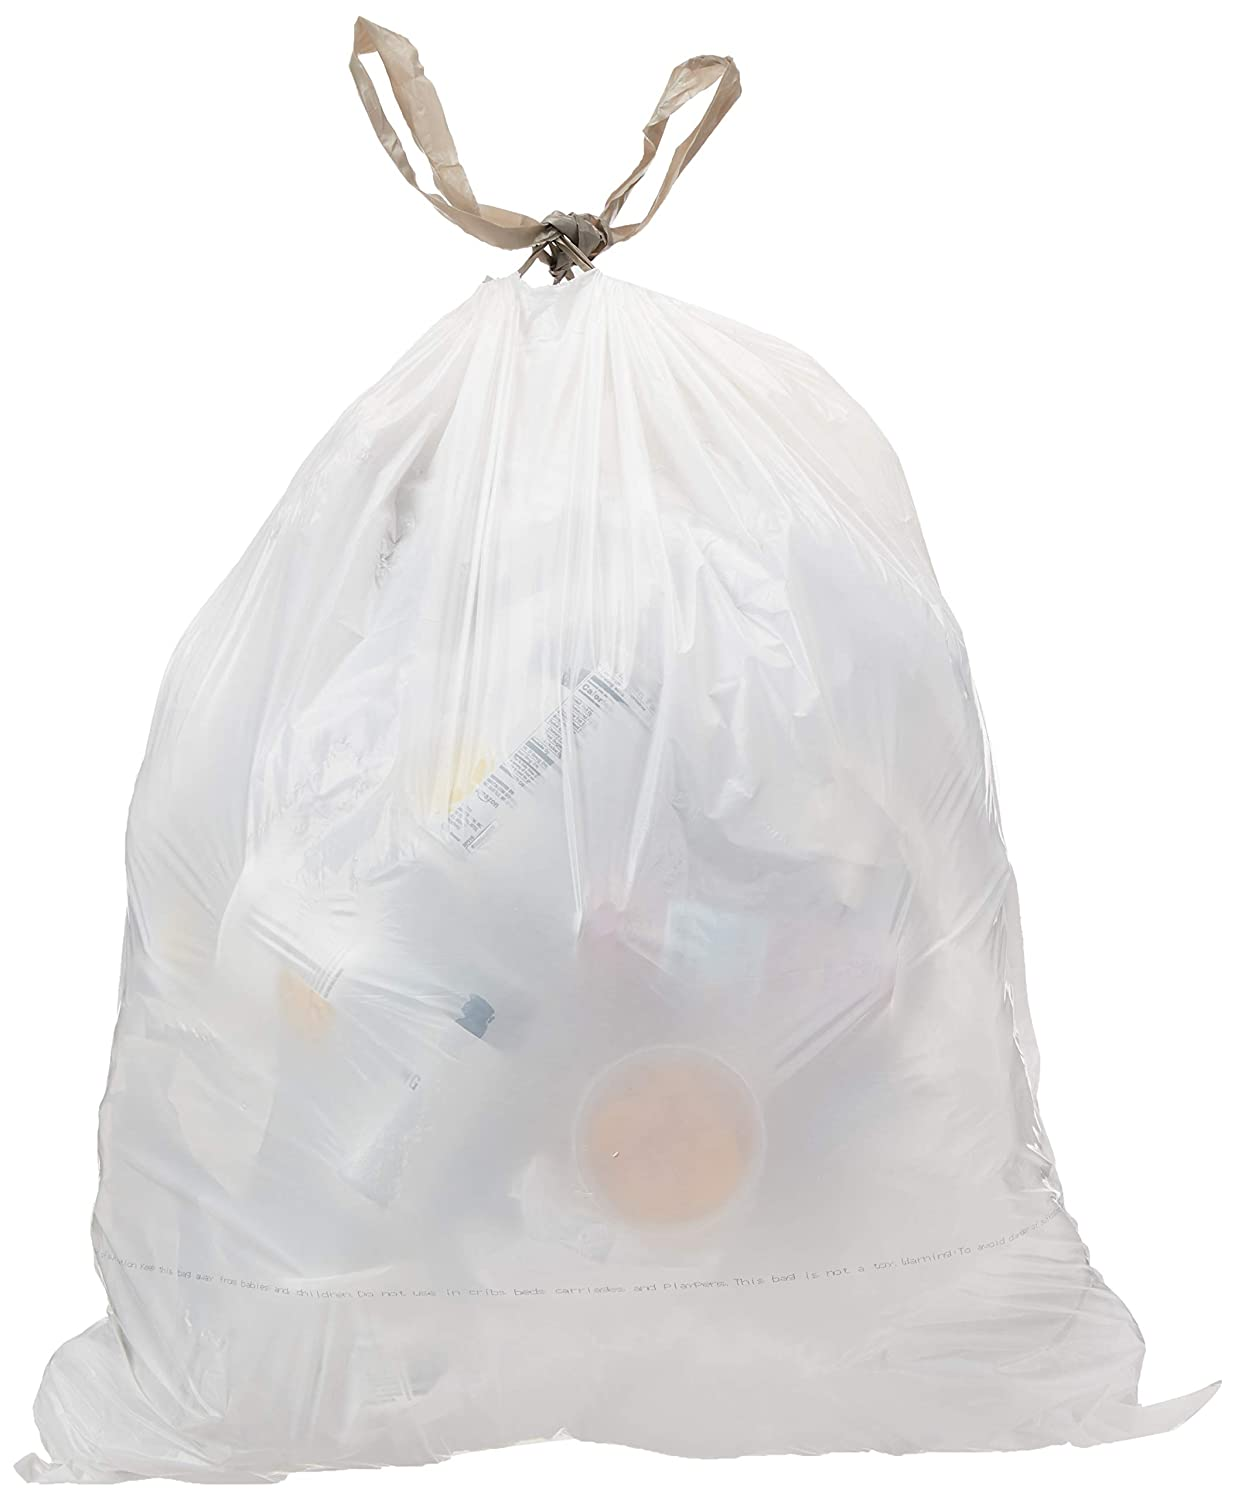 AmazonCommercial 18 Gallon Trash Compactor Bags /w Drawstrings - 2 MIL - 50 Count